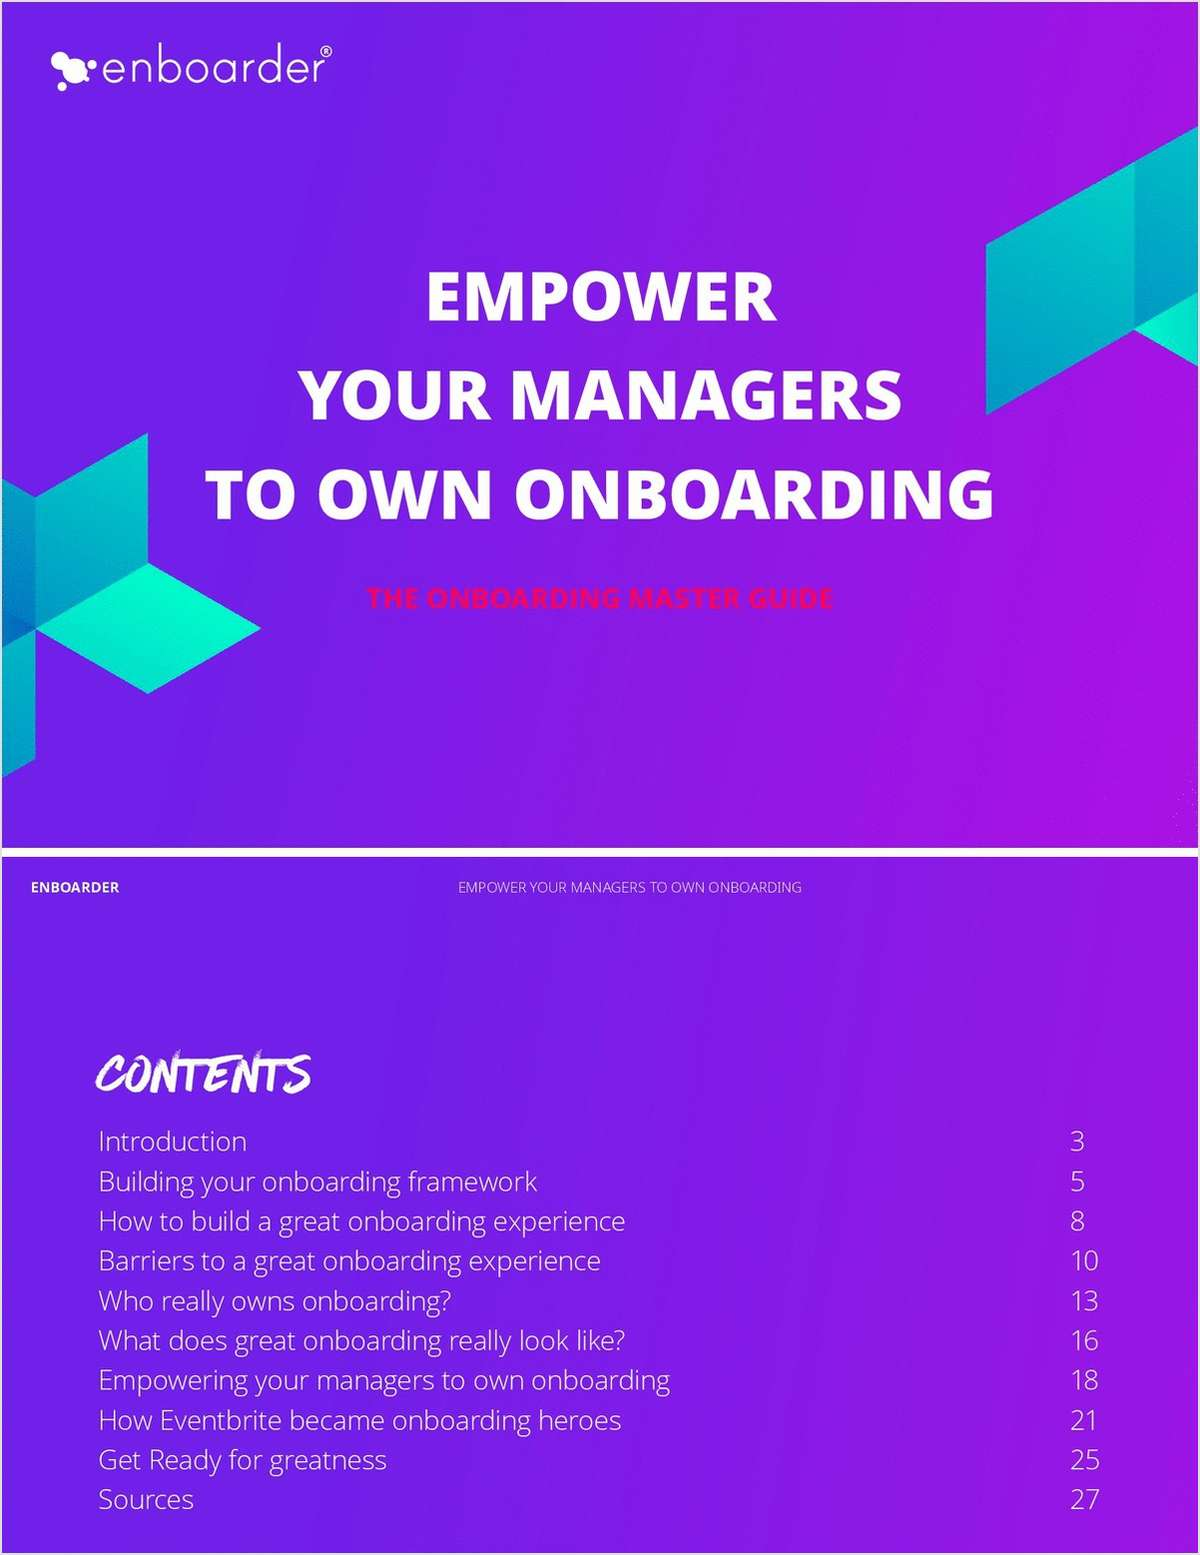 Empower Your Managers to Own Onboarding